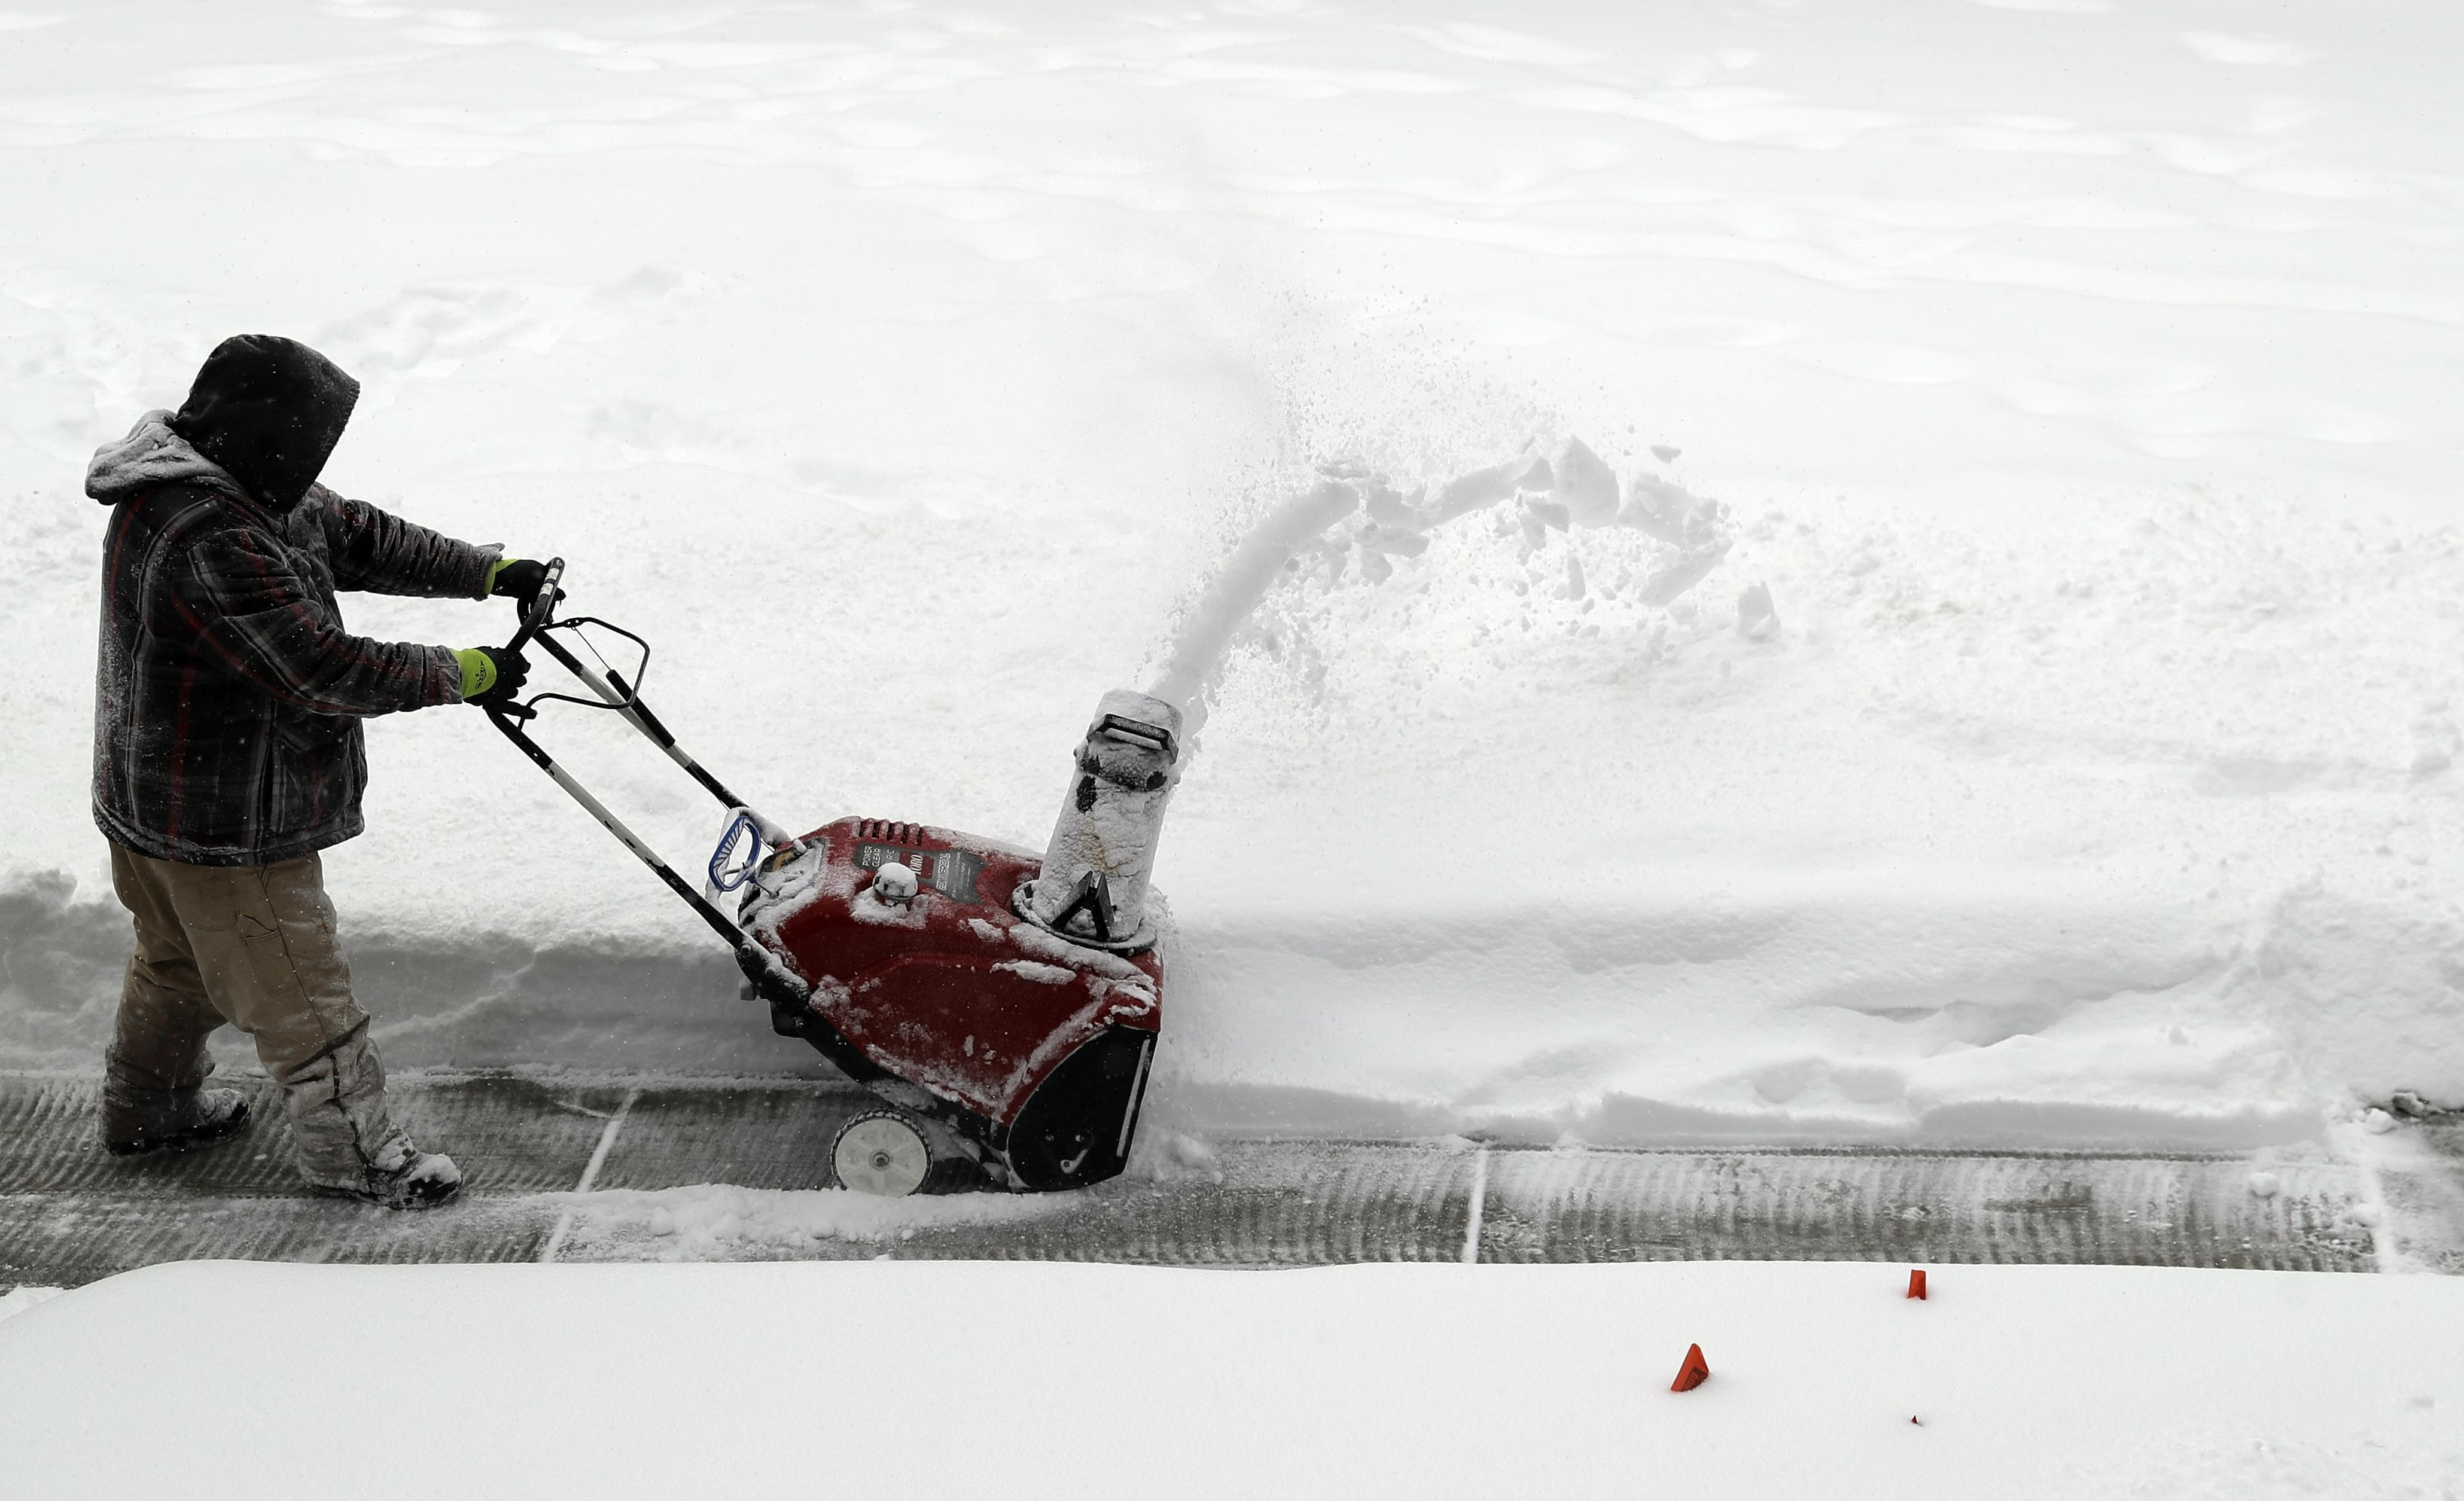 A man uses a snowblower to clear snow from a sidewalk in Chicago during a February snowstorm.